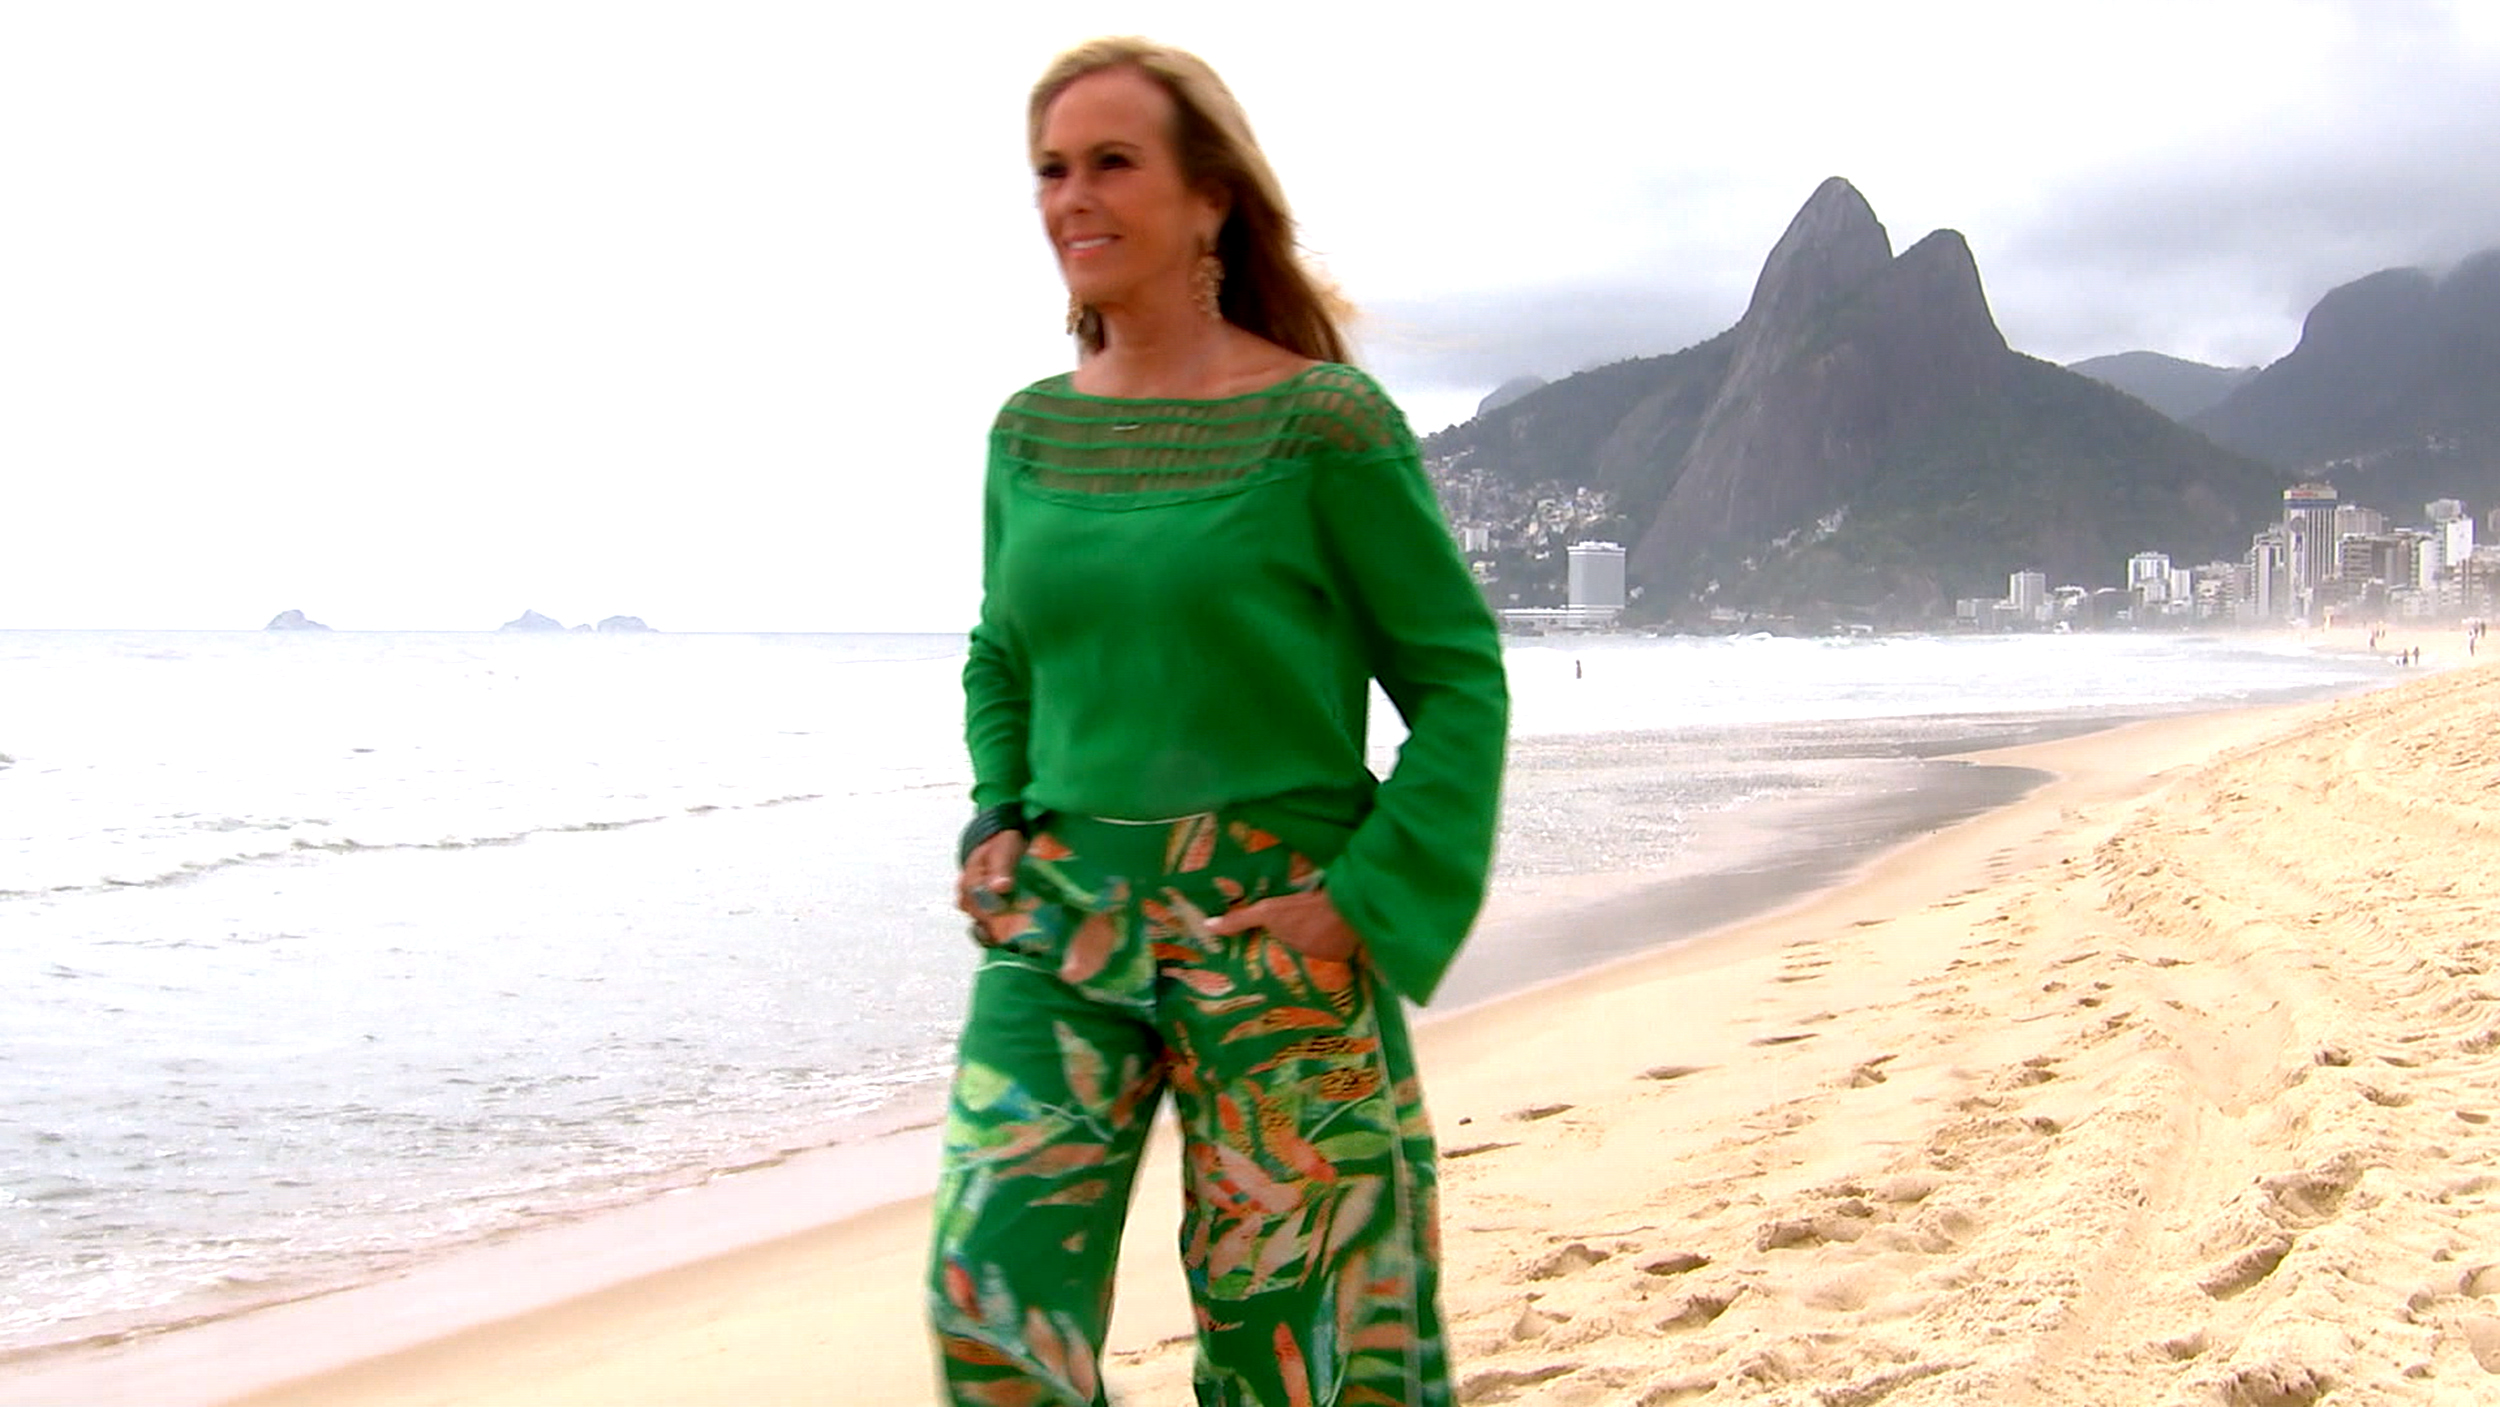 Peters Body Shop >> Brazilian beauty! Meet the woman who inspired 'Girl from Ipanema' - TODAY.com